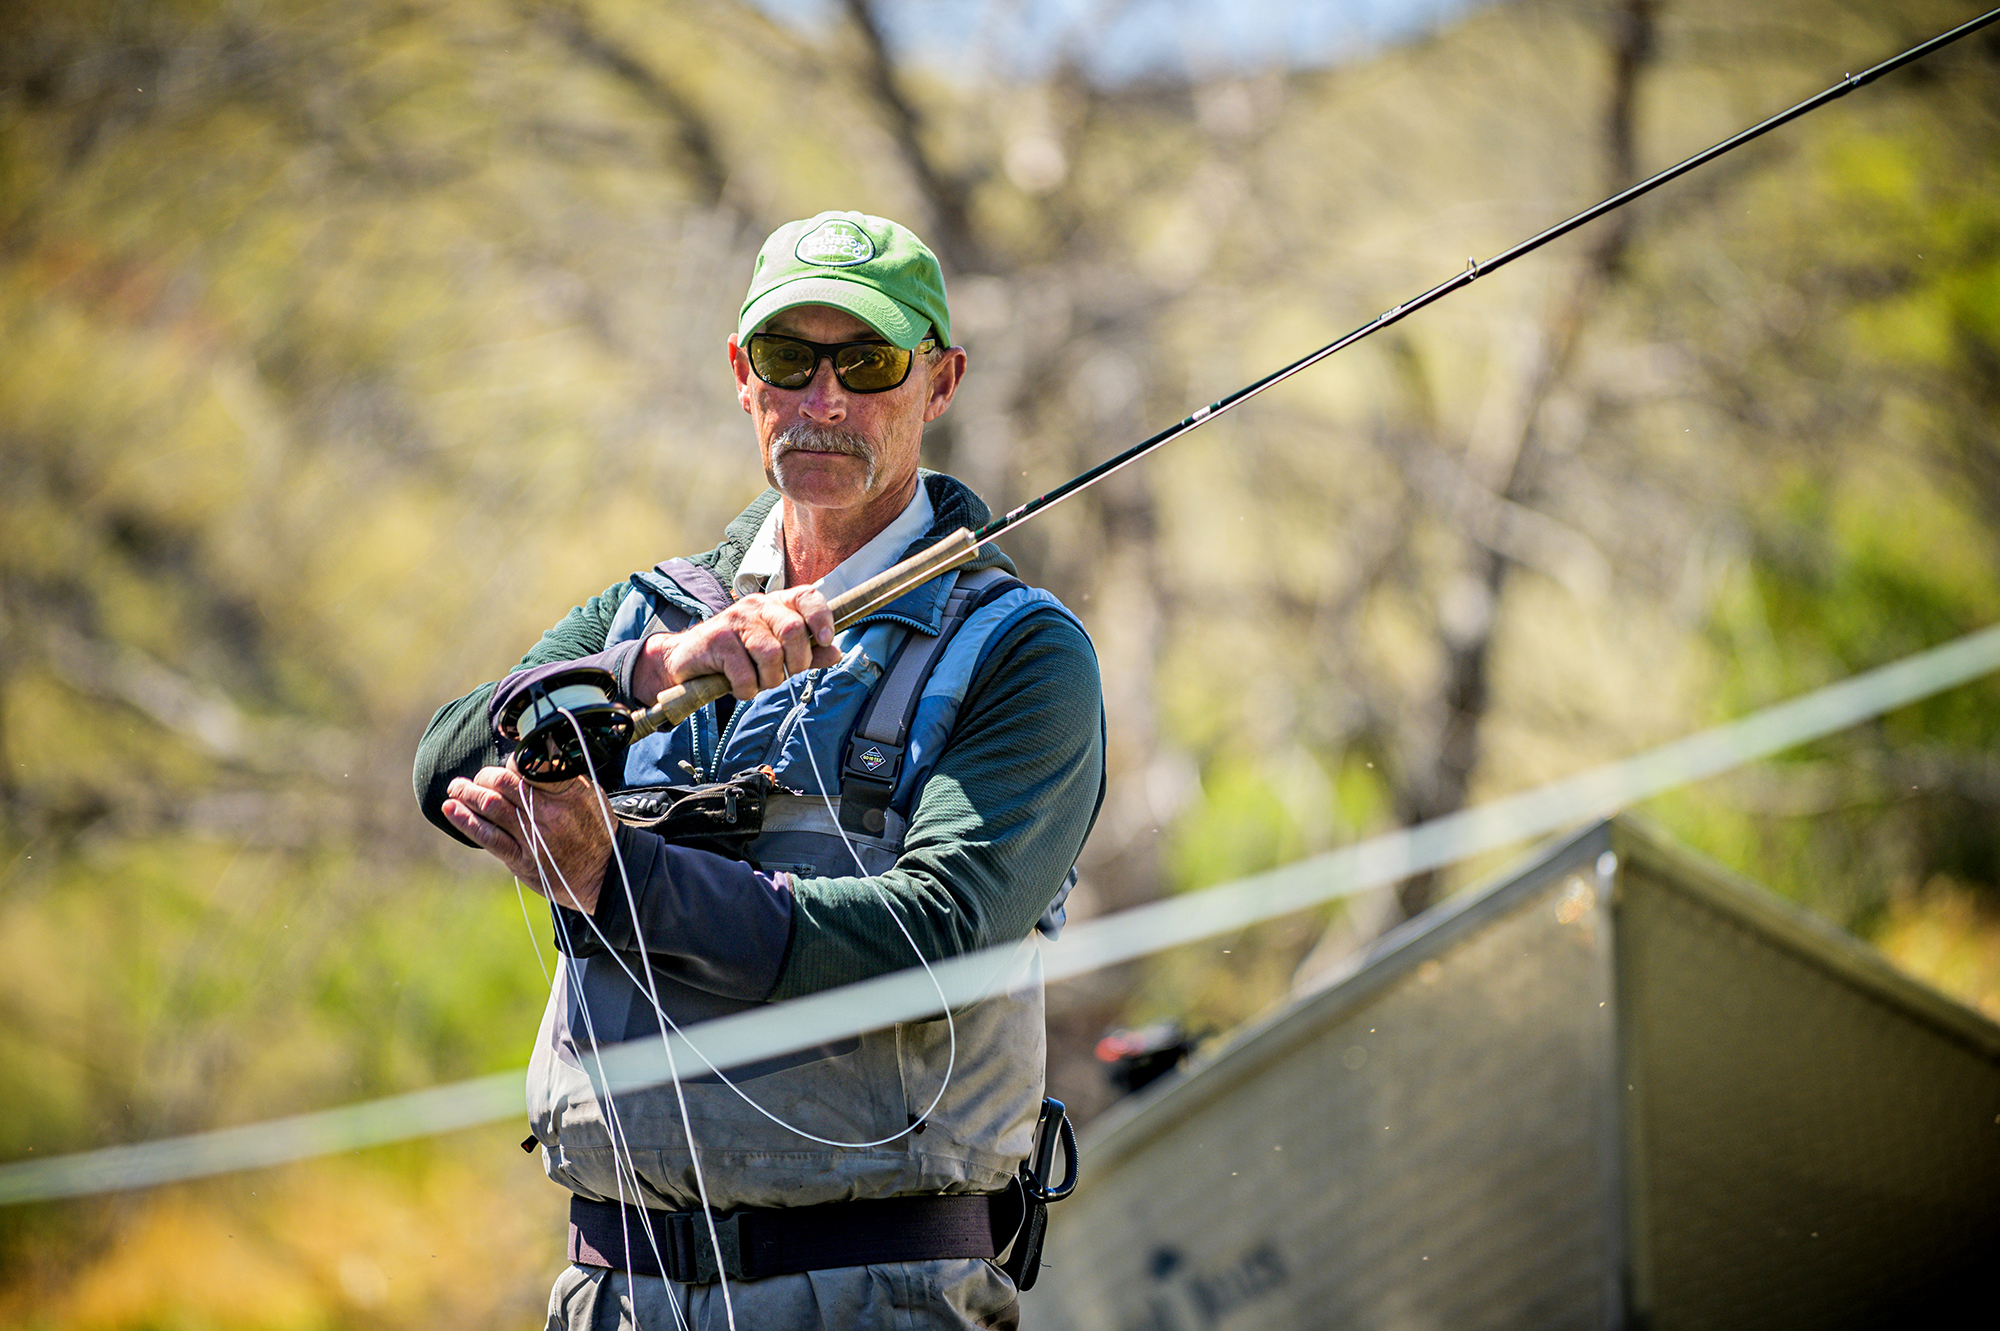 Brian Silvey is a seasoned guide and angler based in Oregon state.